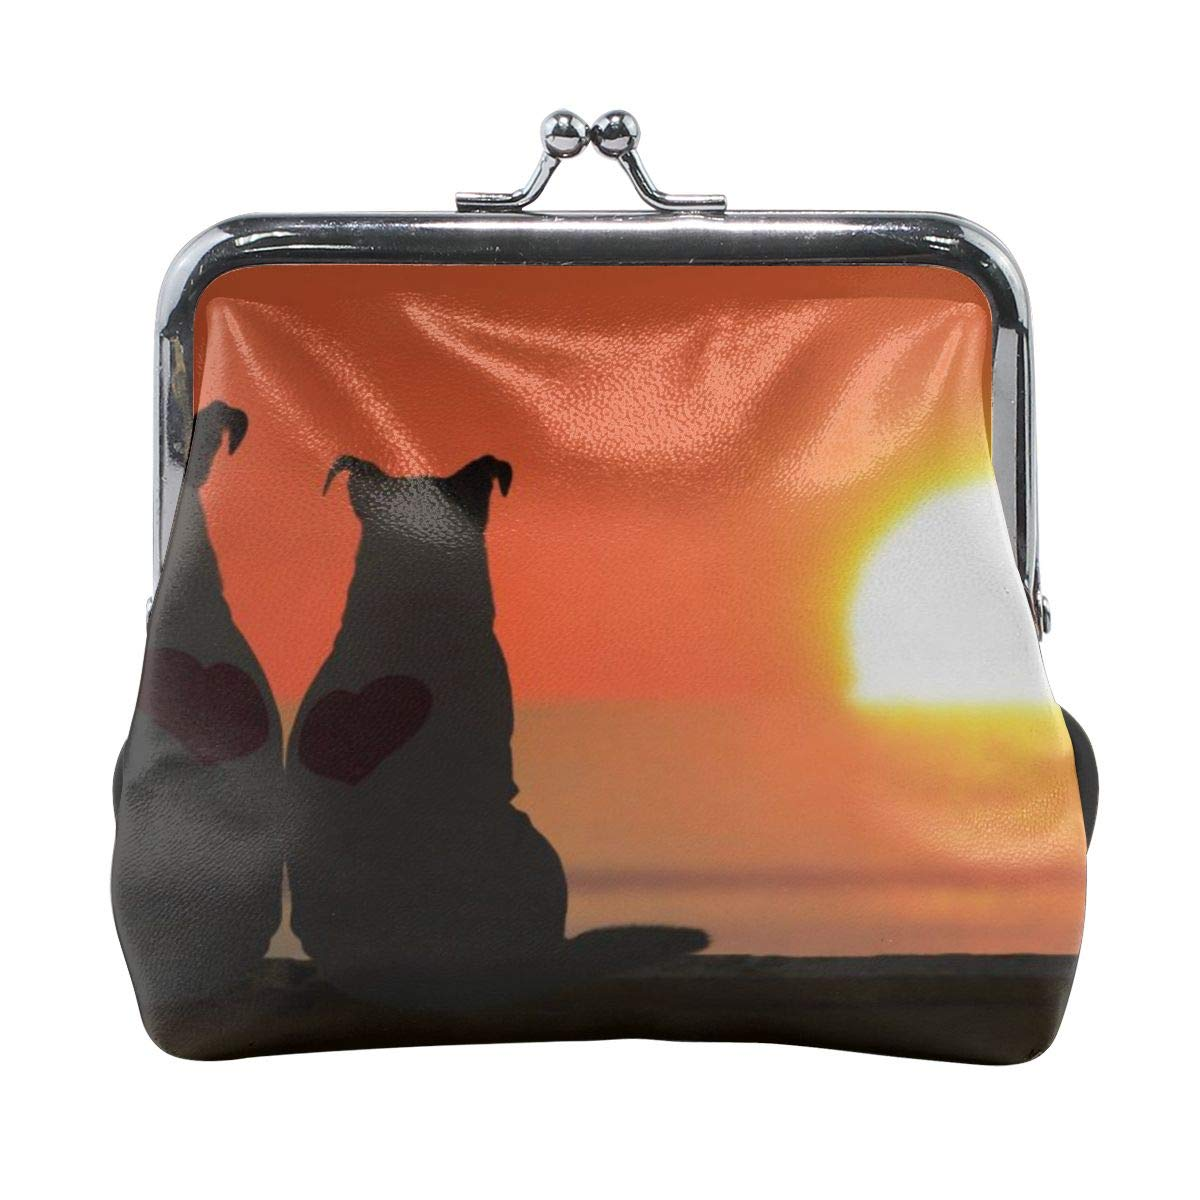 Yunshm Russell Terrier Watching The Sunset Personalized Leather Classic Floral Coin Purse Clutch Pouch Wallet For Womens